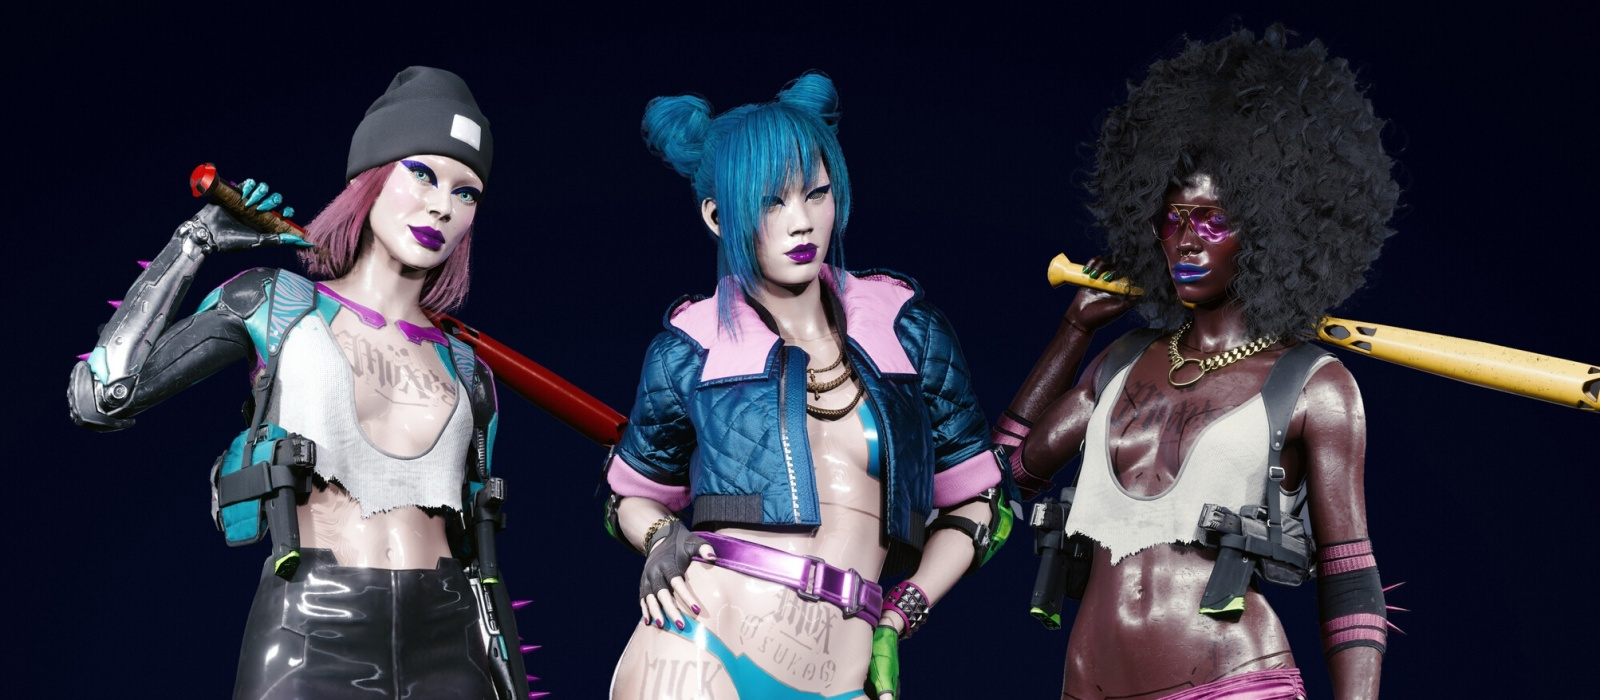 Knight City Gangs in Cyberpunk 2077. Haitian Netrunners, Combat Prostitutes and Eastern Europeans